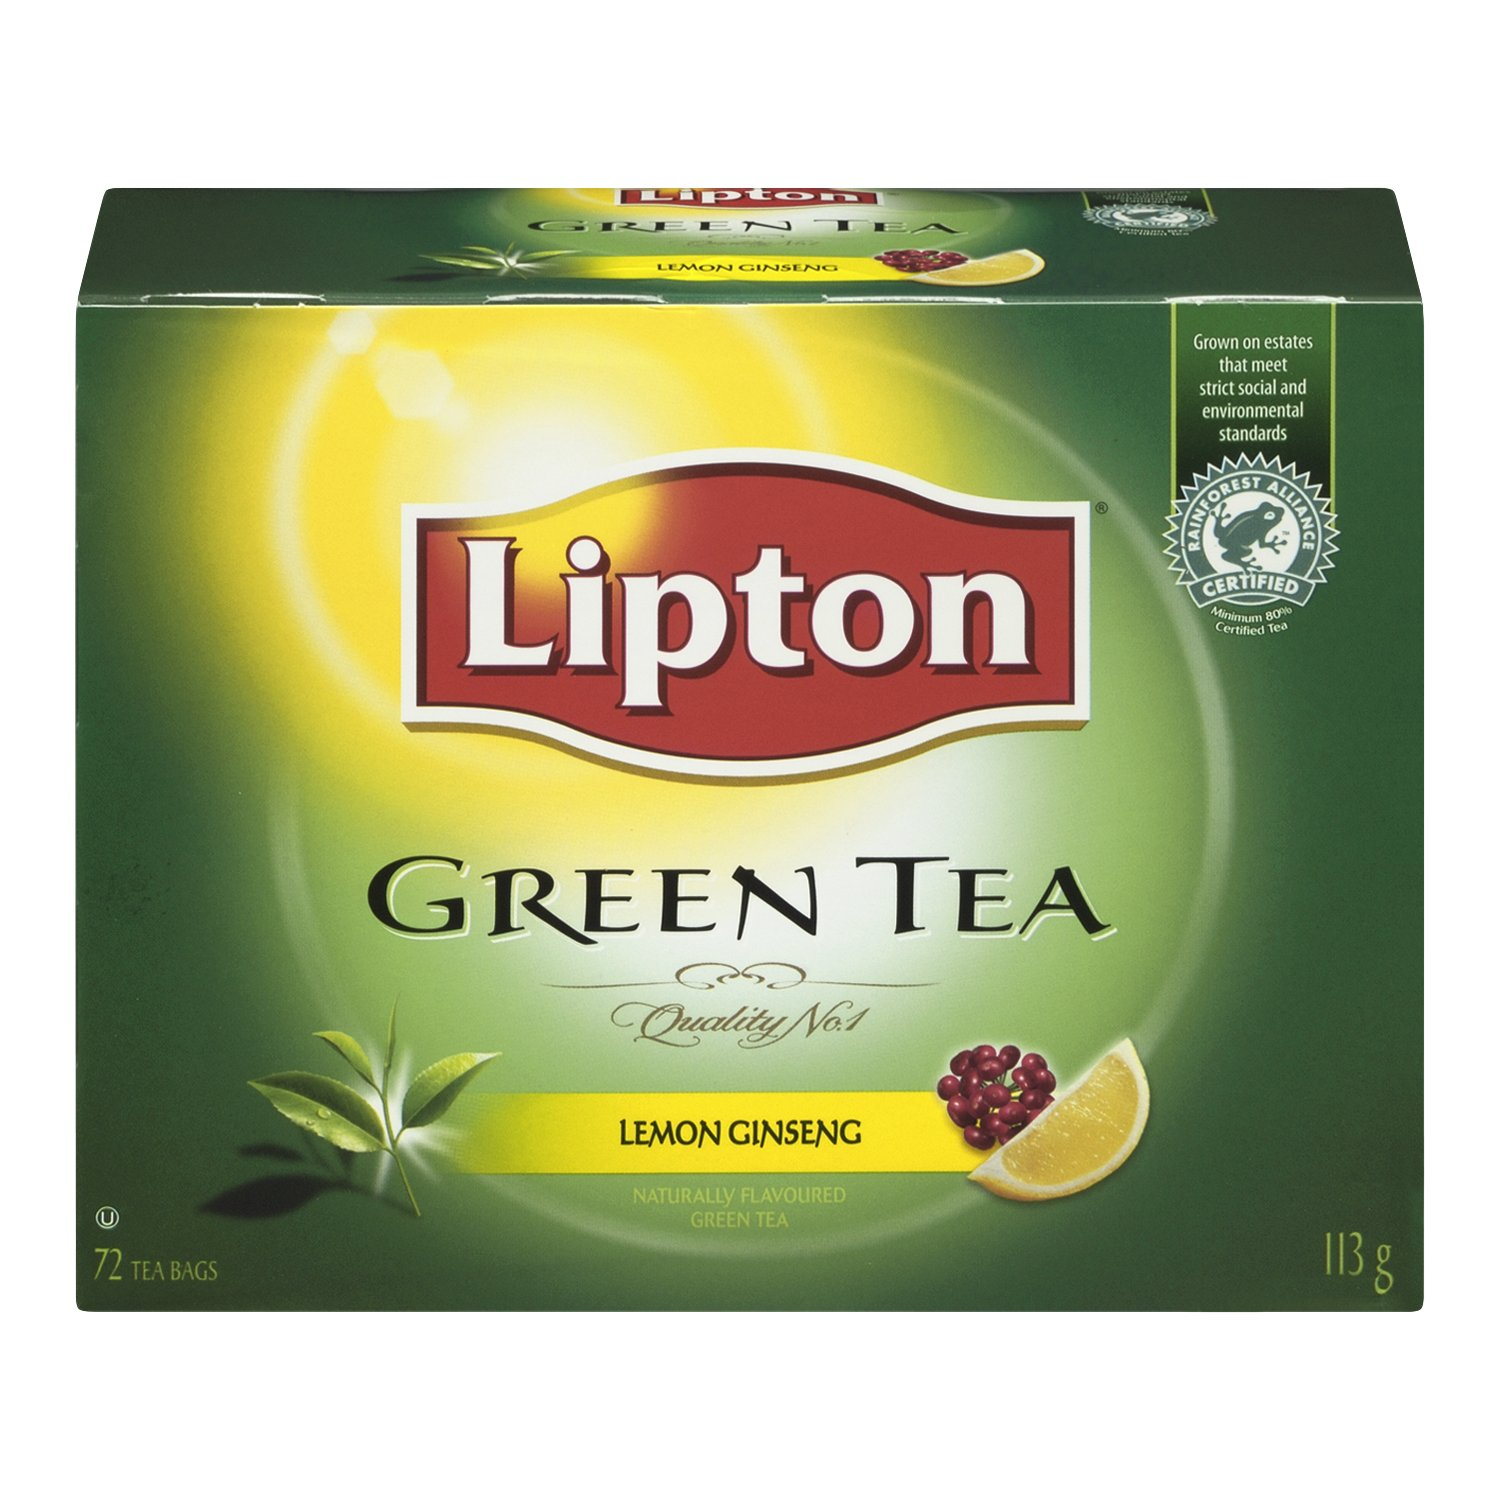 $3.88 (was $6.62) Lipton Green Tea Lemon Ginseng Tea Bags 72 Count